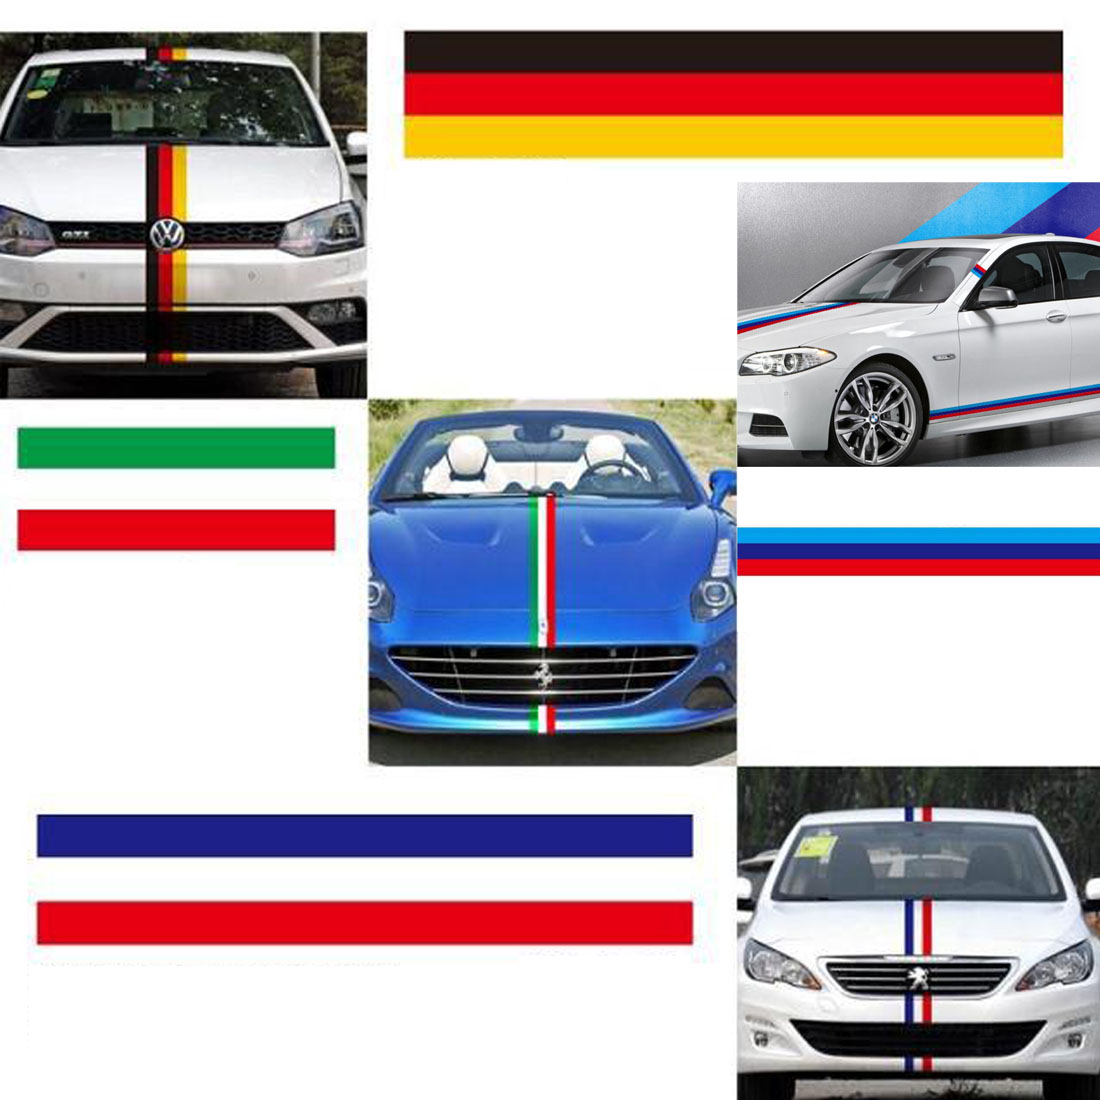 Car parking stickers design india - Dongzhen 3 Country Flag Auto Car Cover Mat Sticker For Ford Bmw Benz Toyota Volkswagen Peugeot